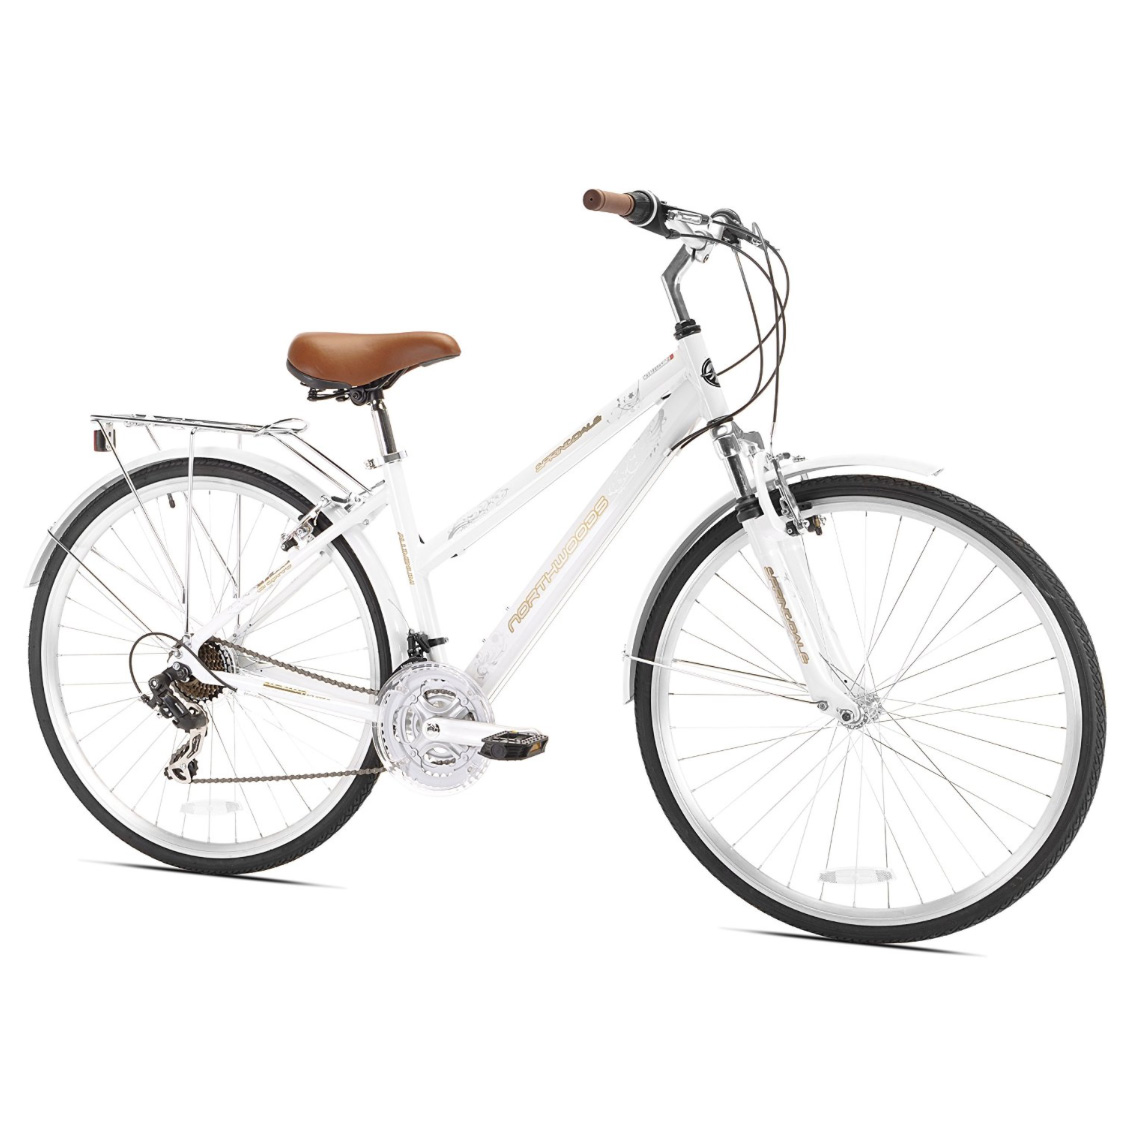 Northwoods - Springdale Women's 21-Speed Hybrid Bicycle, 700c